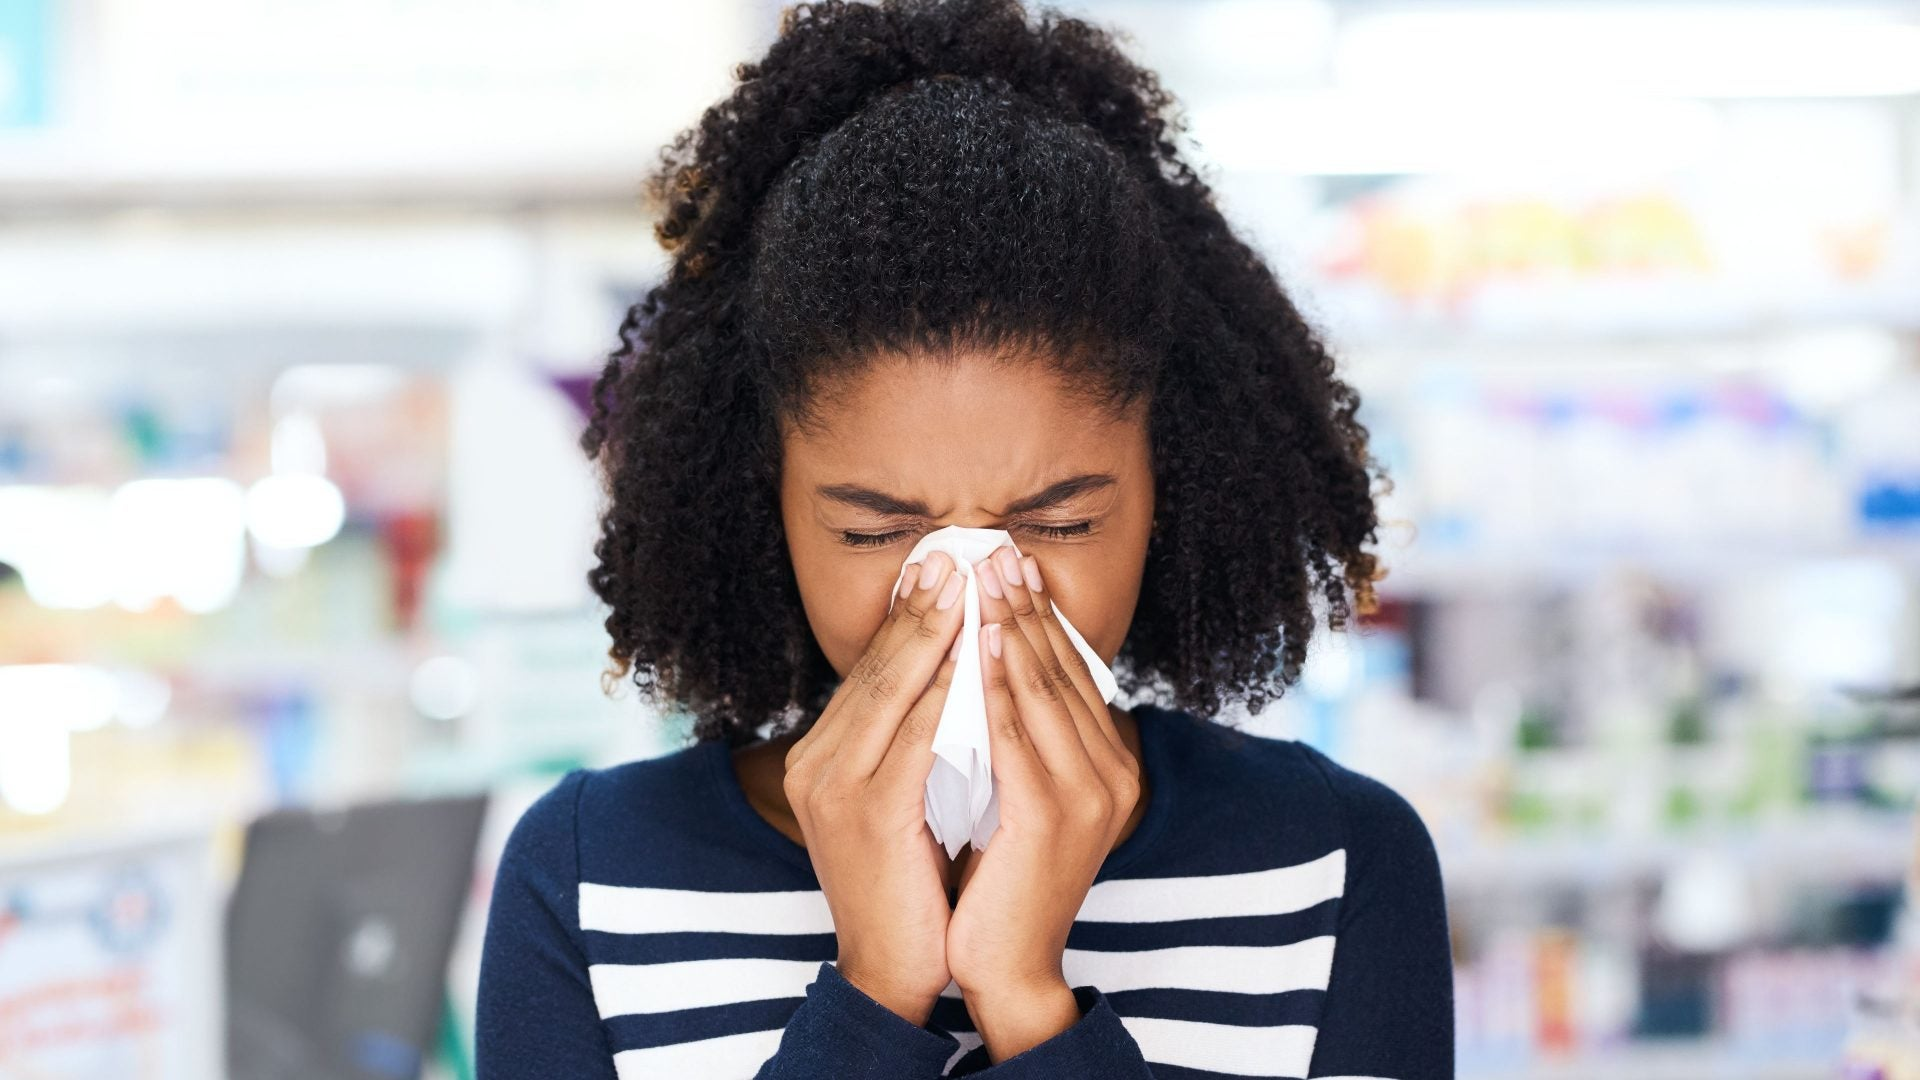 Spring Allergies Coming For You? Here Are 5 Must-Have Products To Beat The Sneeze